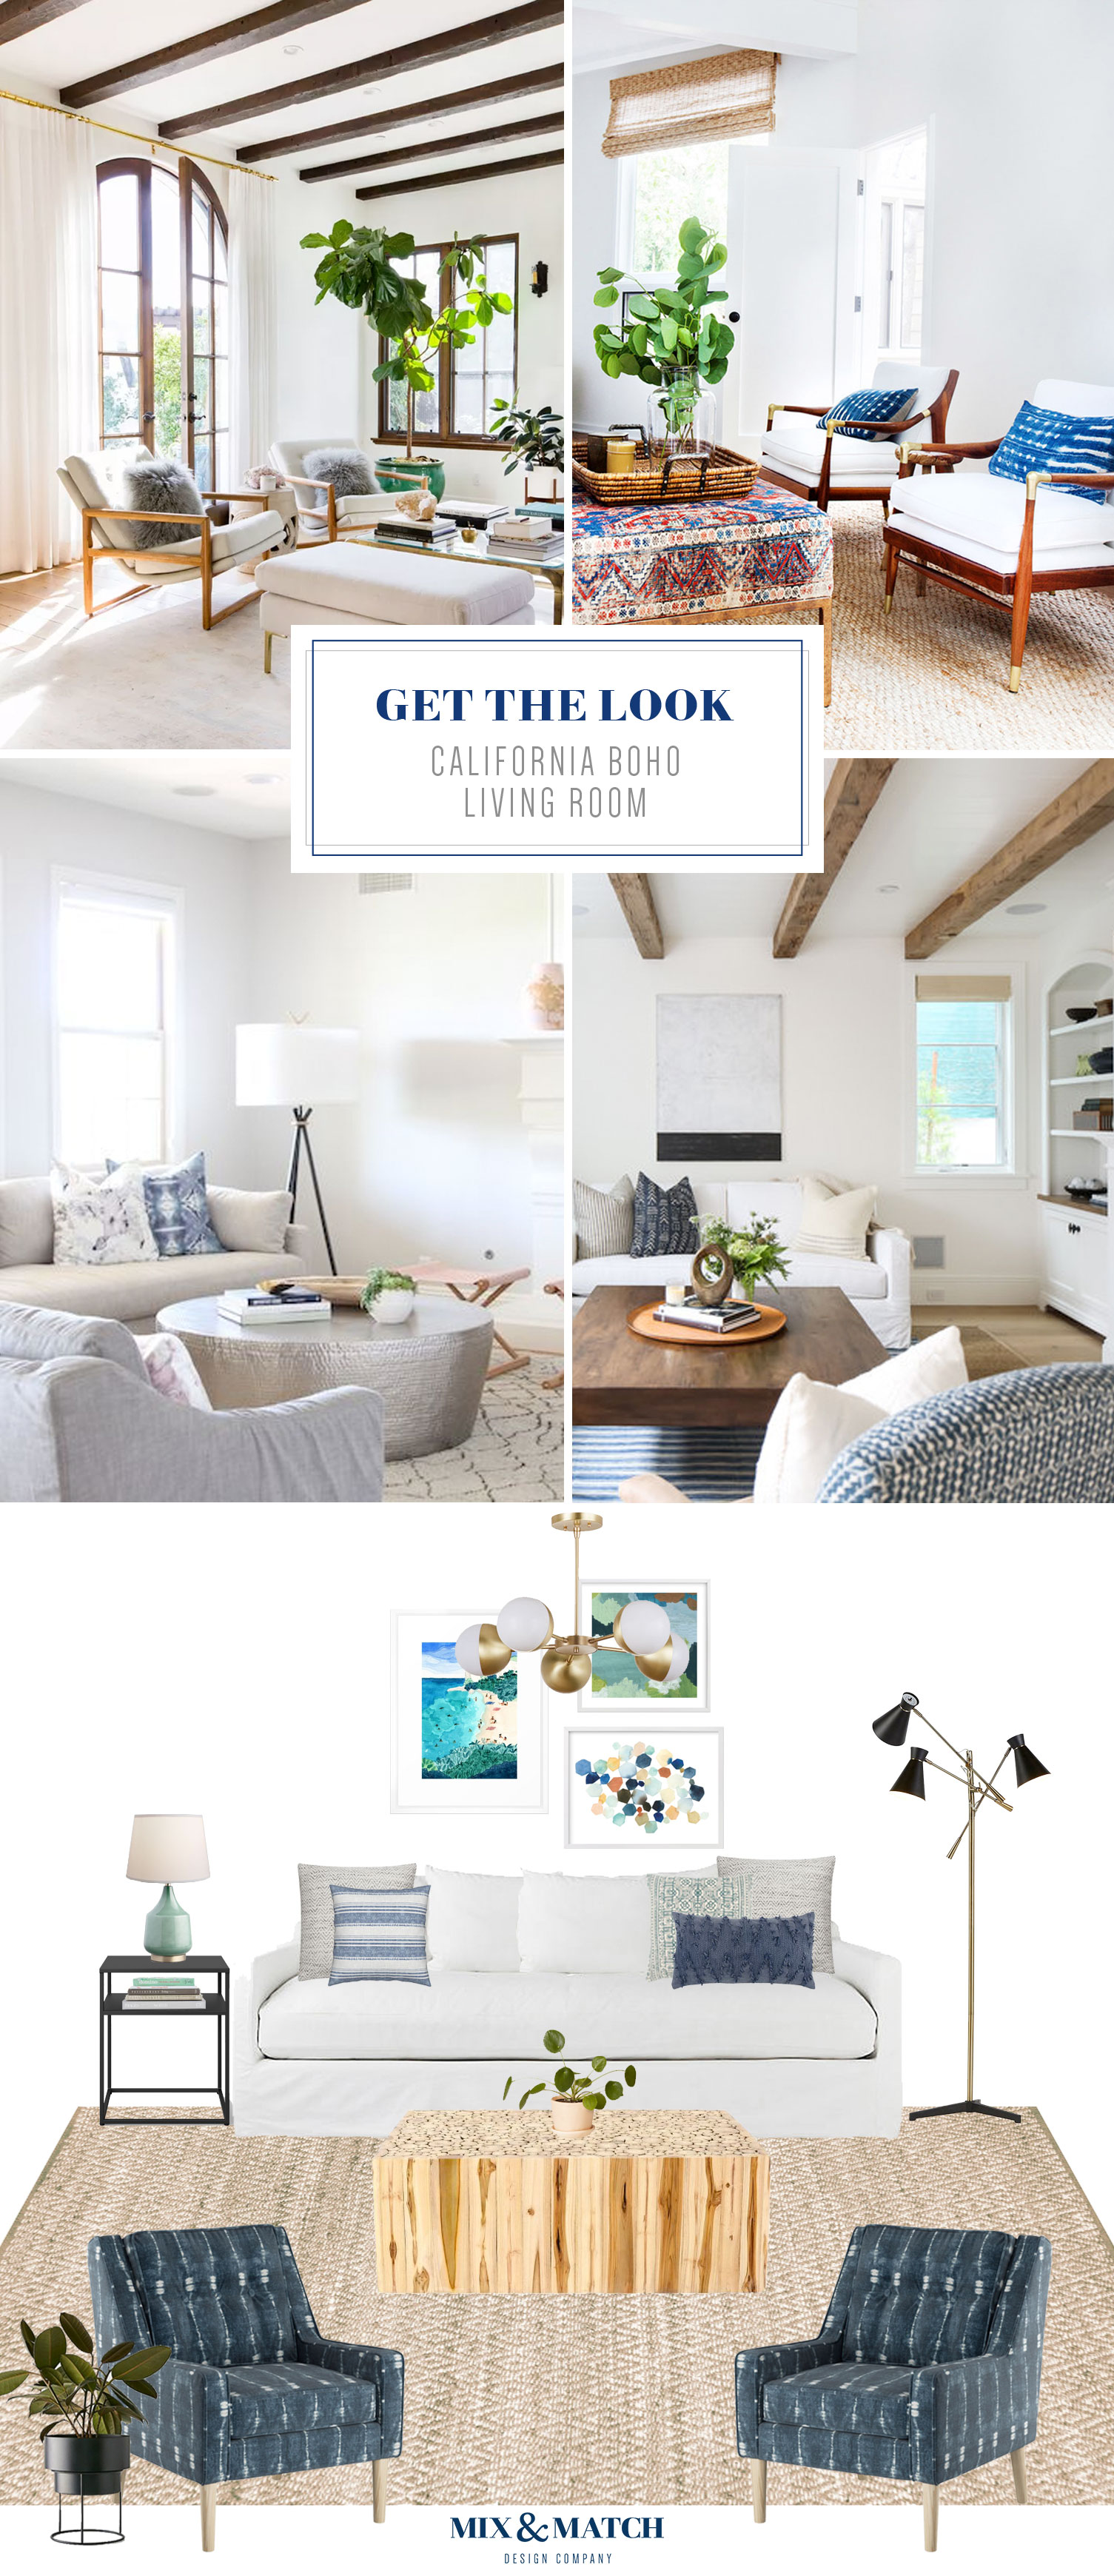 Get the look of this California Boho living room over on the Mix & Match blog! This coastal modern decorating style has a light and airy, yet cozy feel.